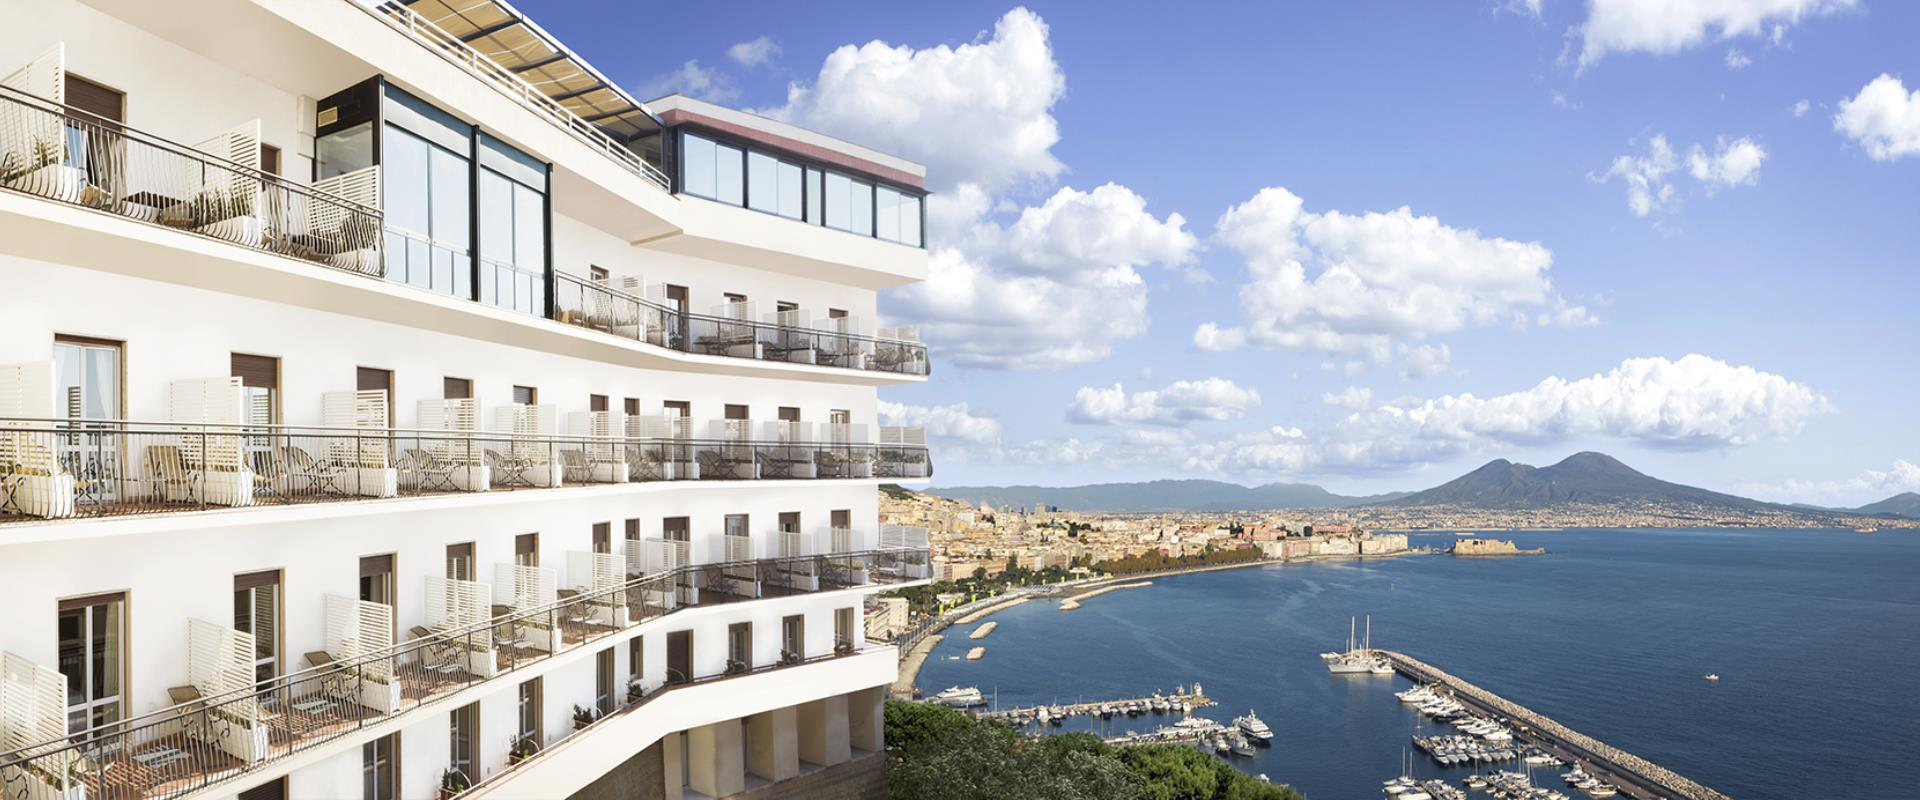 BW Signature Collection Hotel Paradiso Napoli - Albergo 4 Stelle a Posillipo con incredibile vista sul Golfo di Napoli